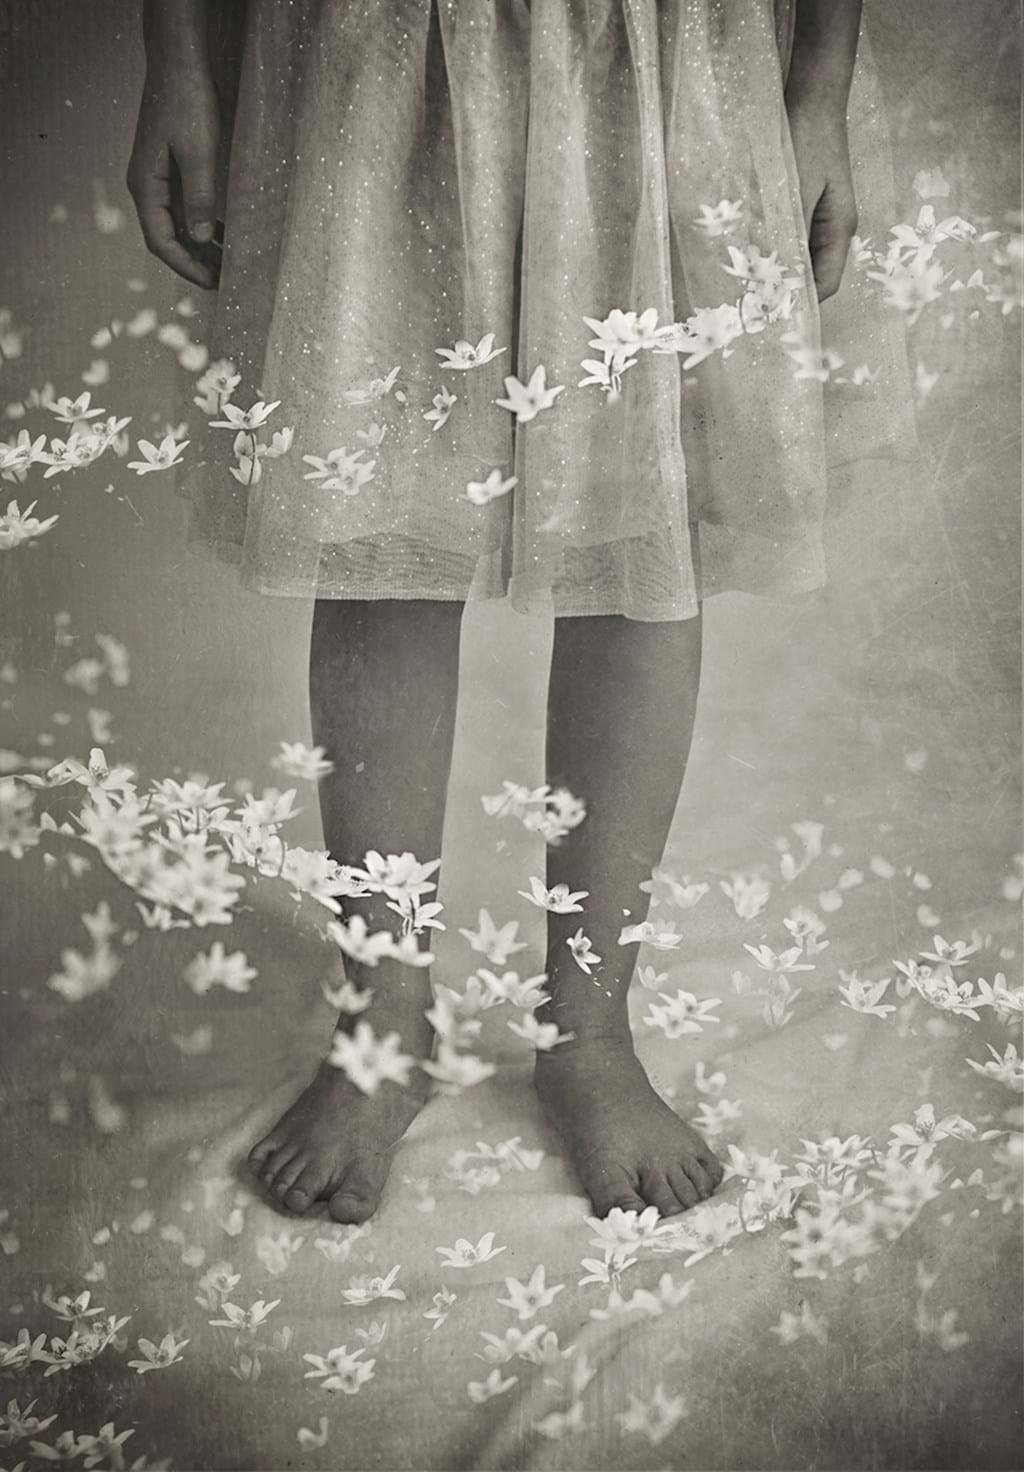 Poster:  Among floating sippers - Flowers are flowing around the legs of a girl with a dress. A beautiful pic...